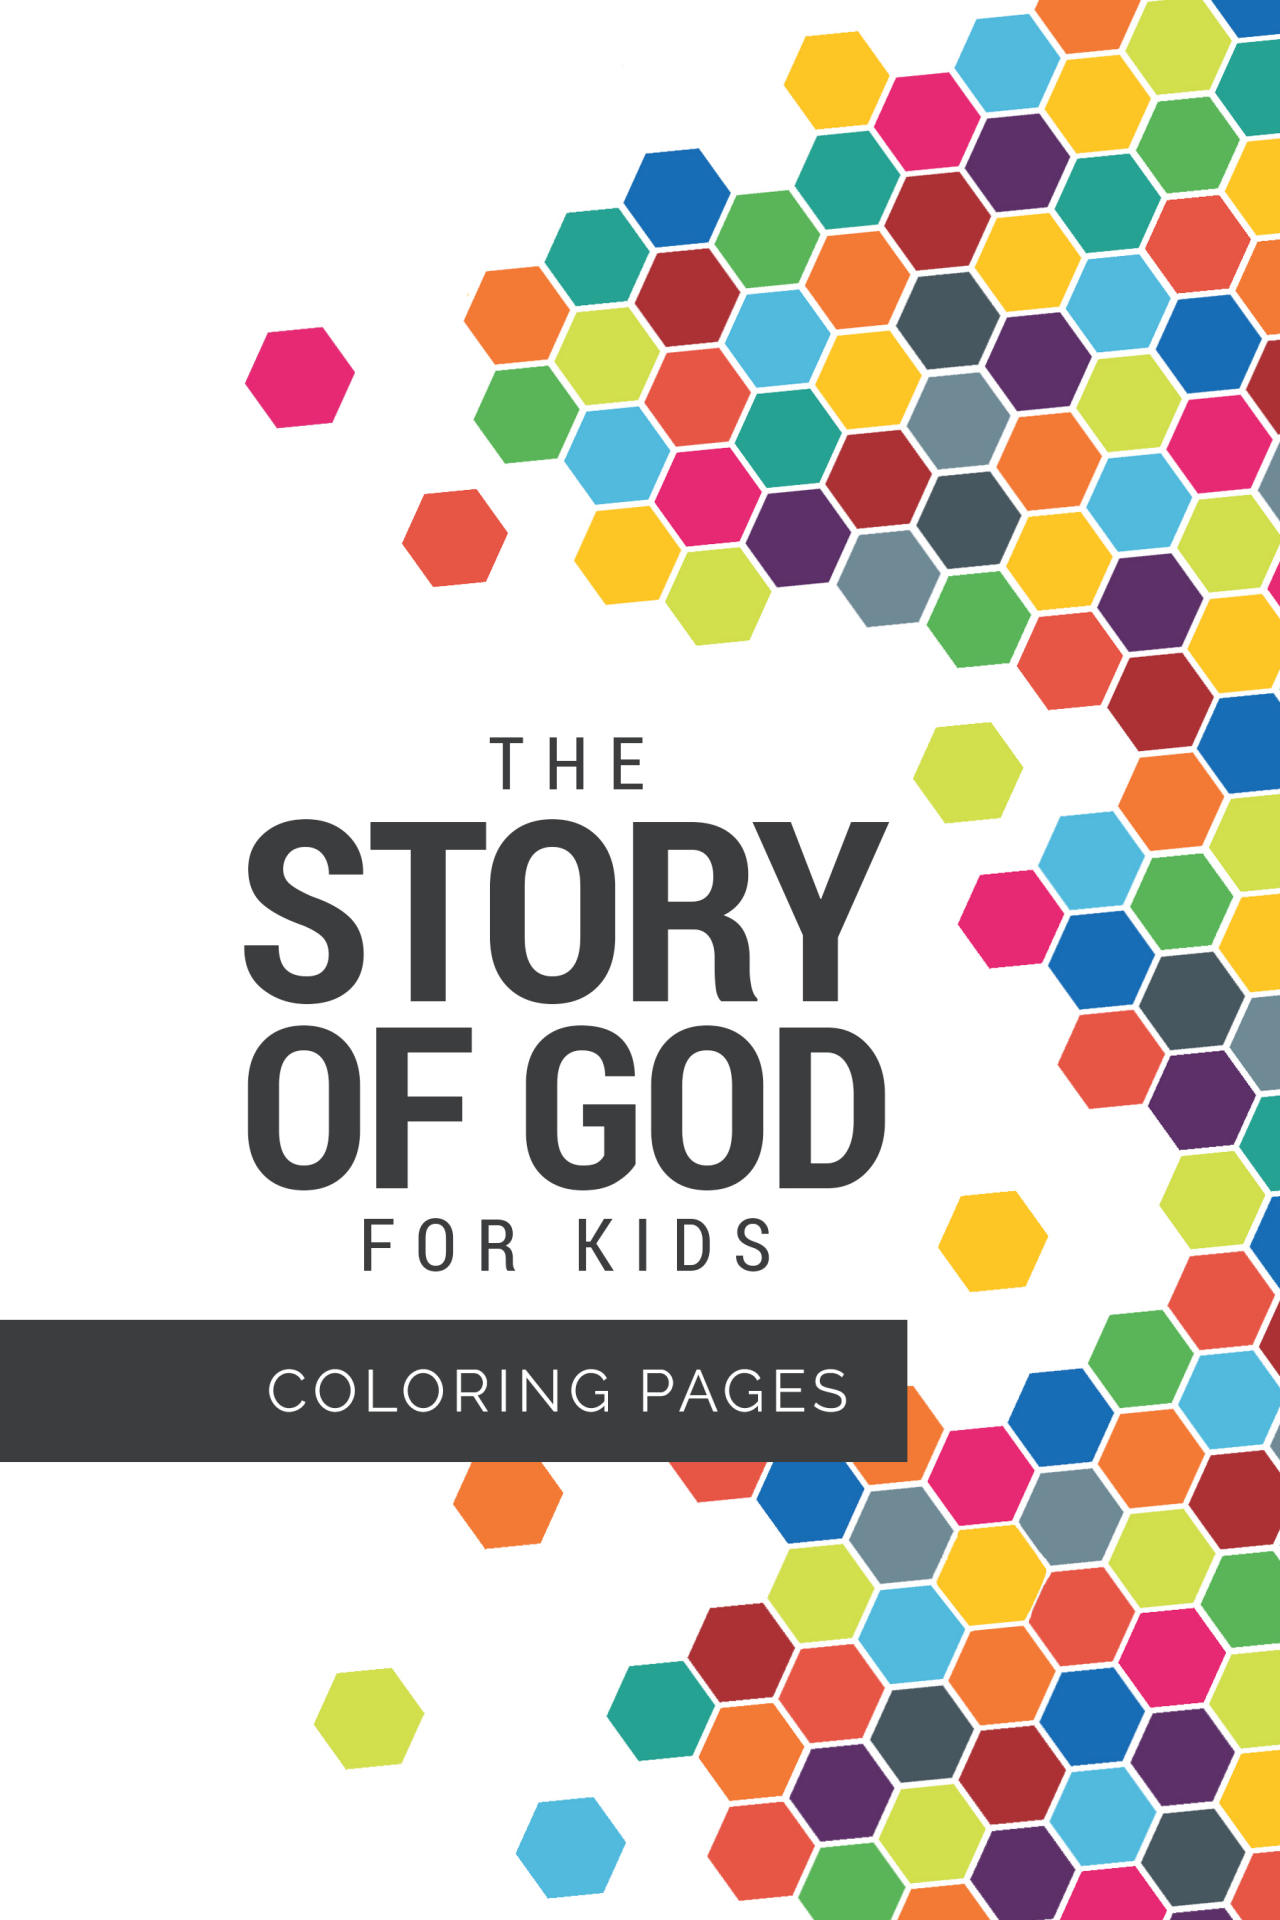 Coloring Sheets | Saturate